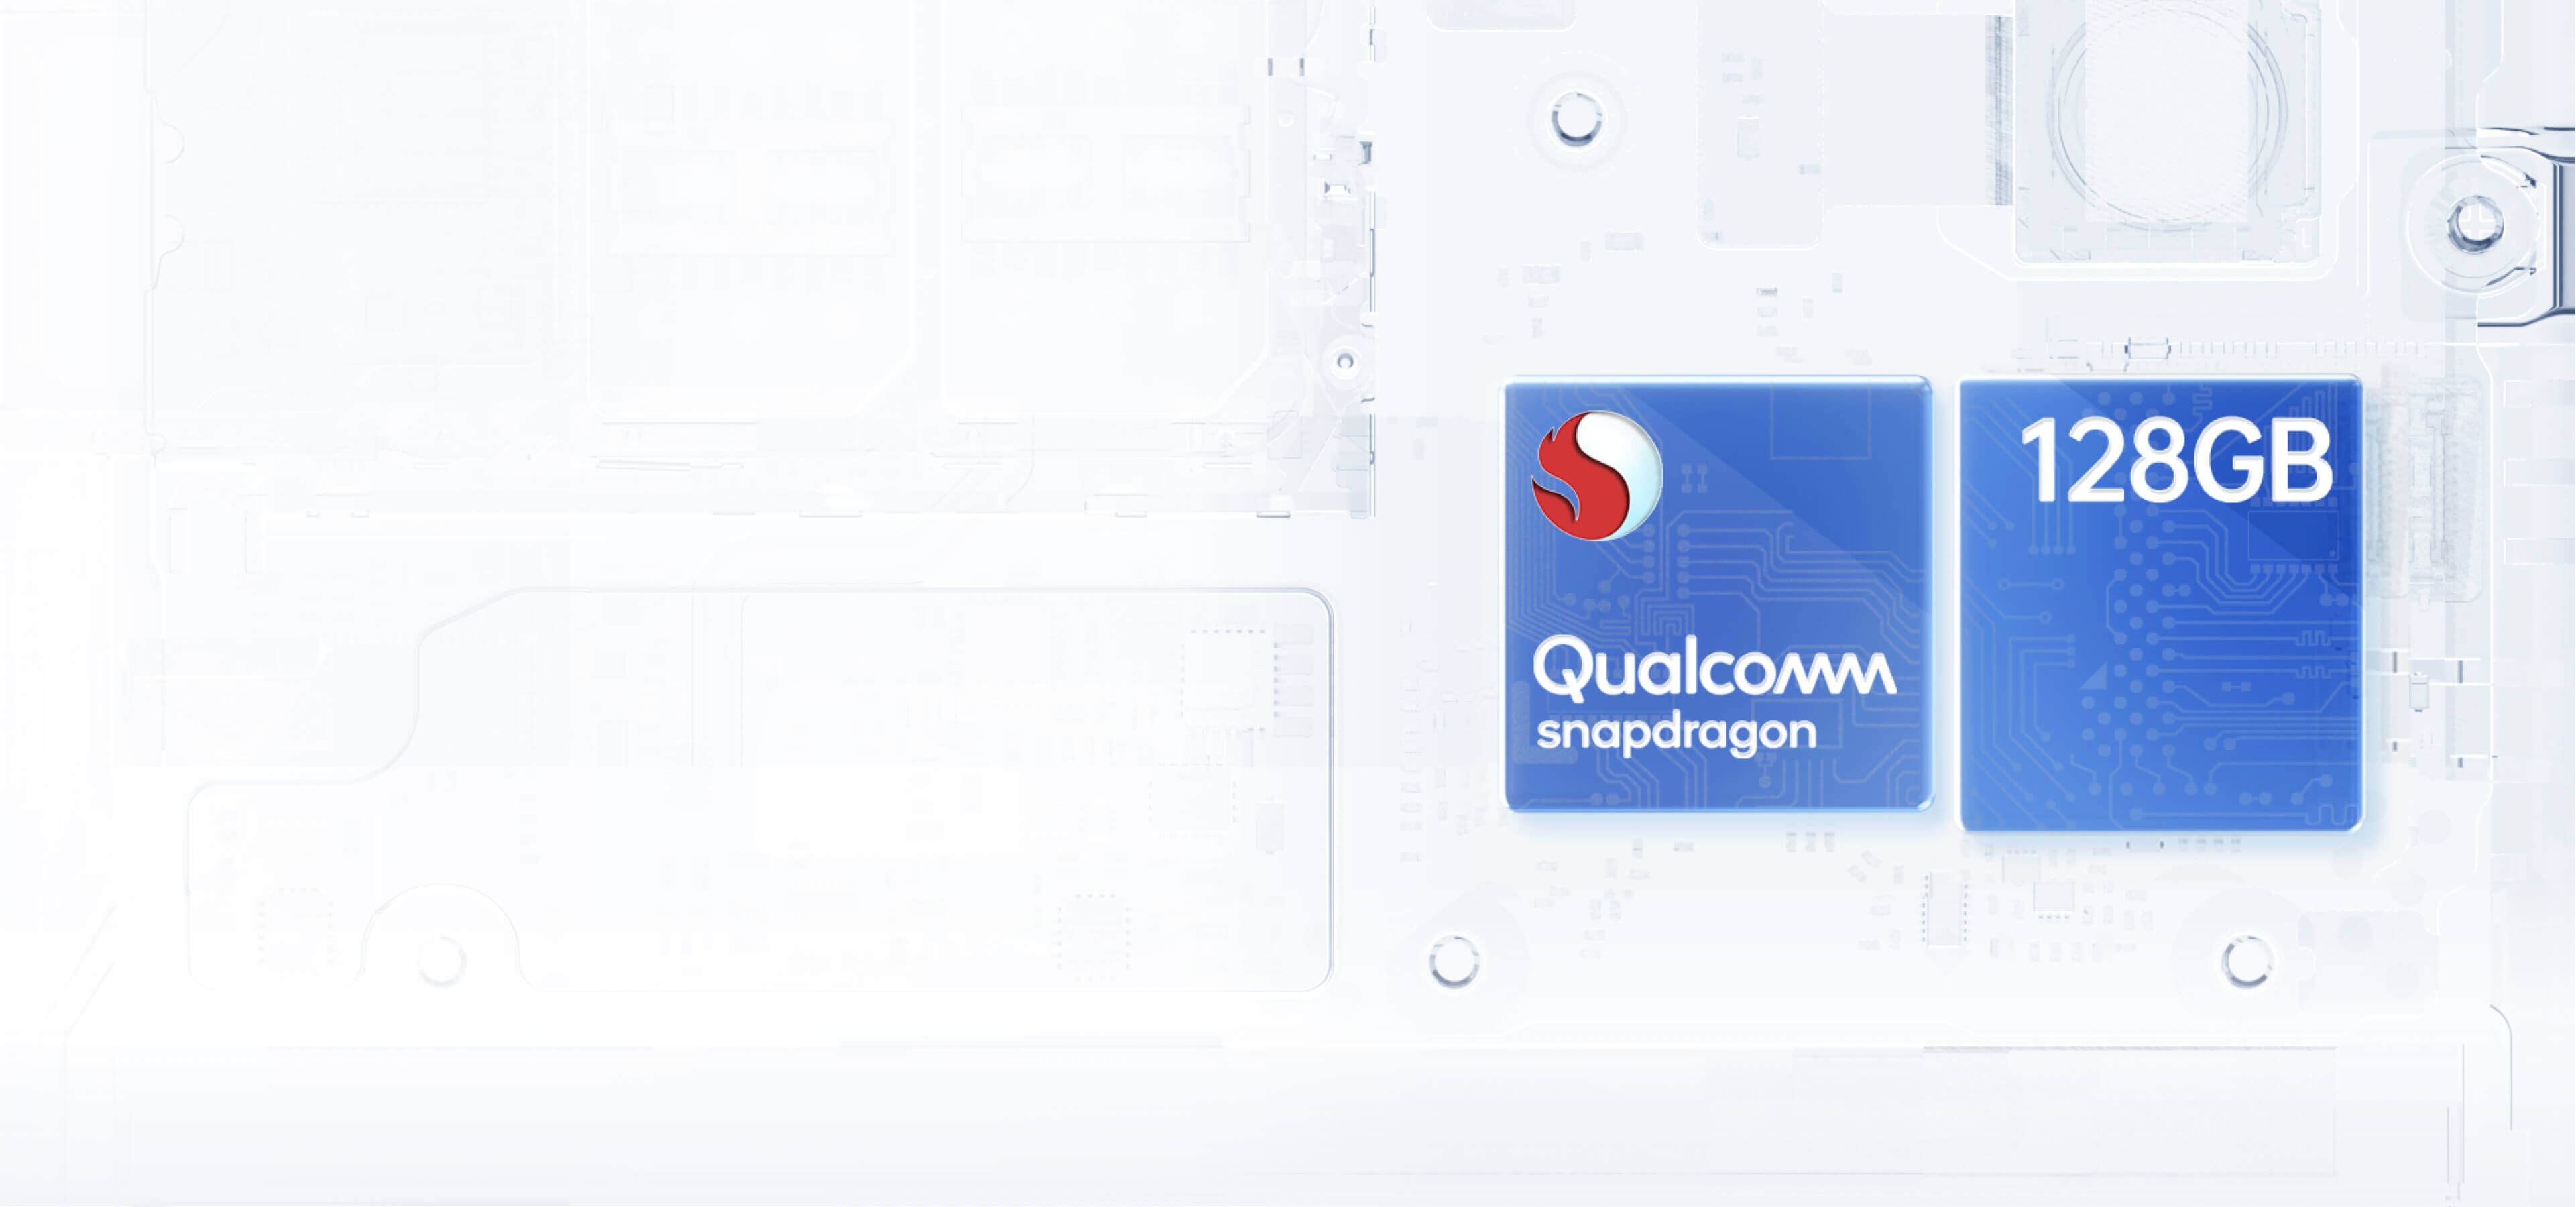 OPPO A53s Qualcomm Snapdragon